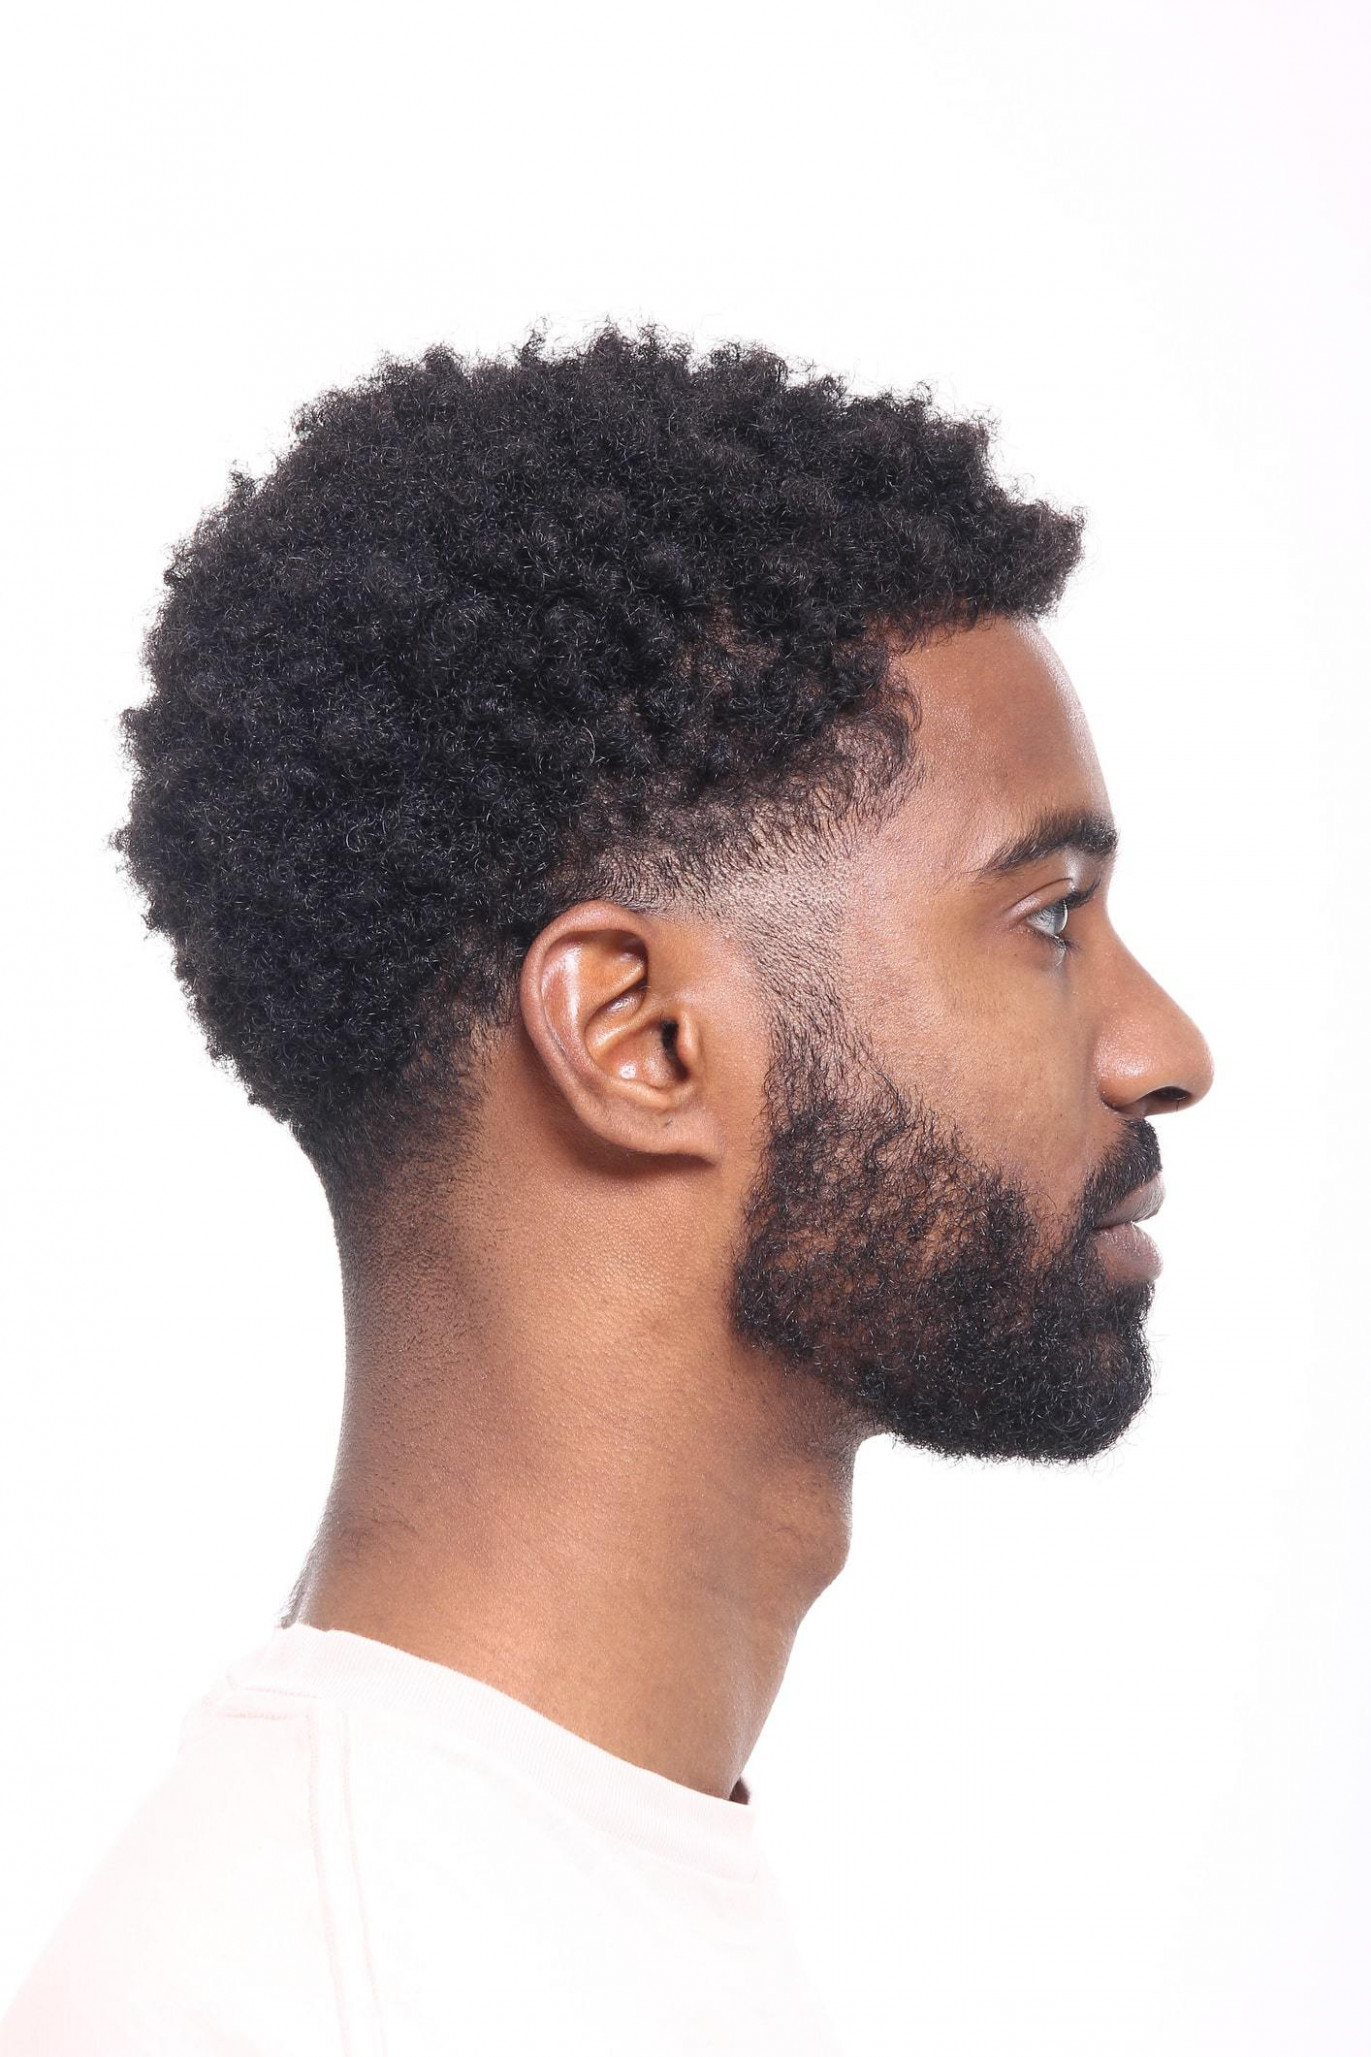 Black men haircuts to try for 10 | all things hair us black mens haircut curly thick hair